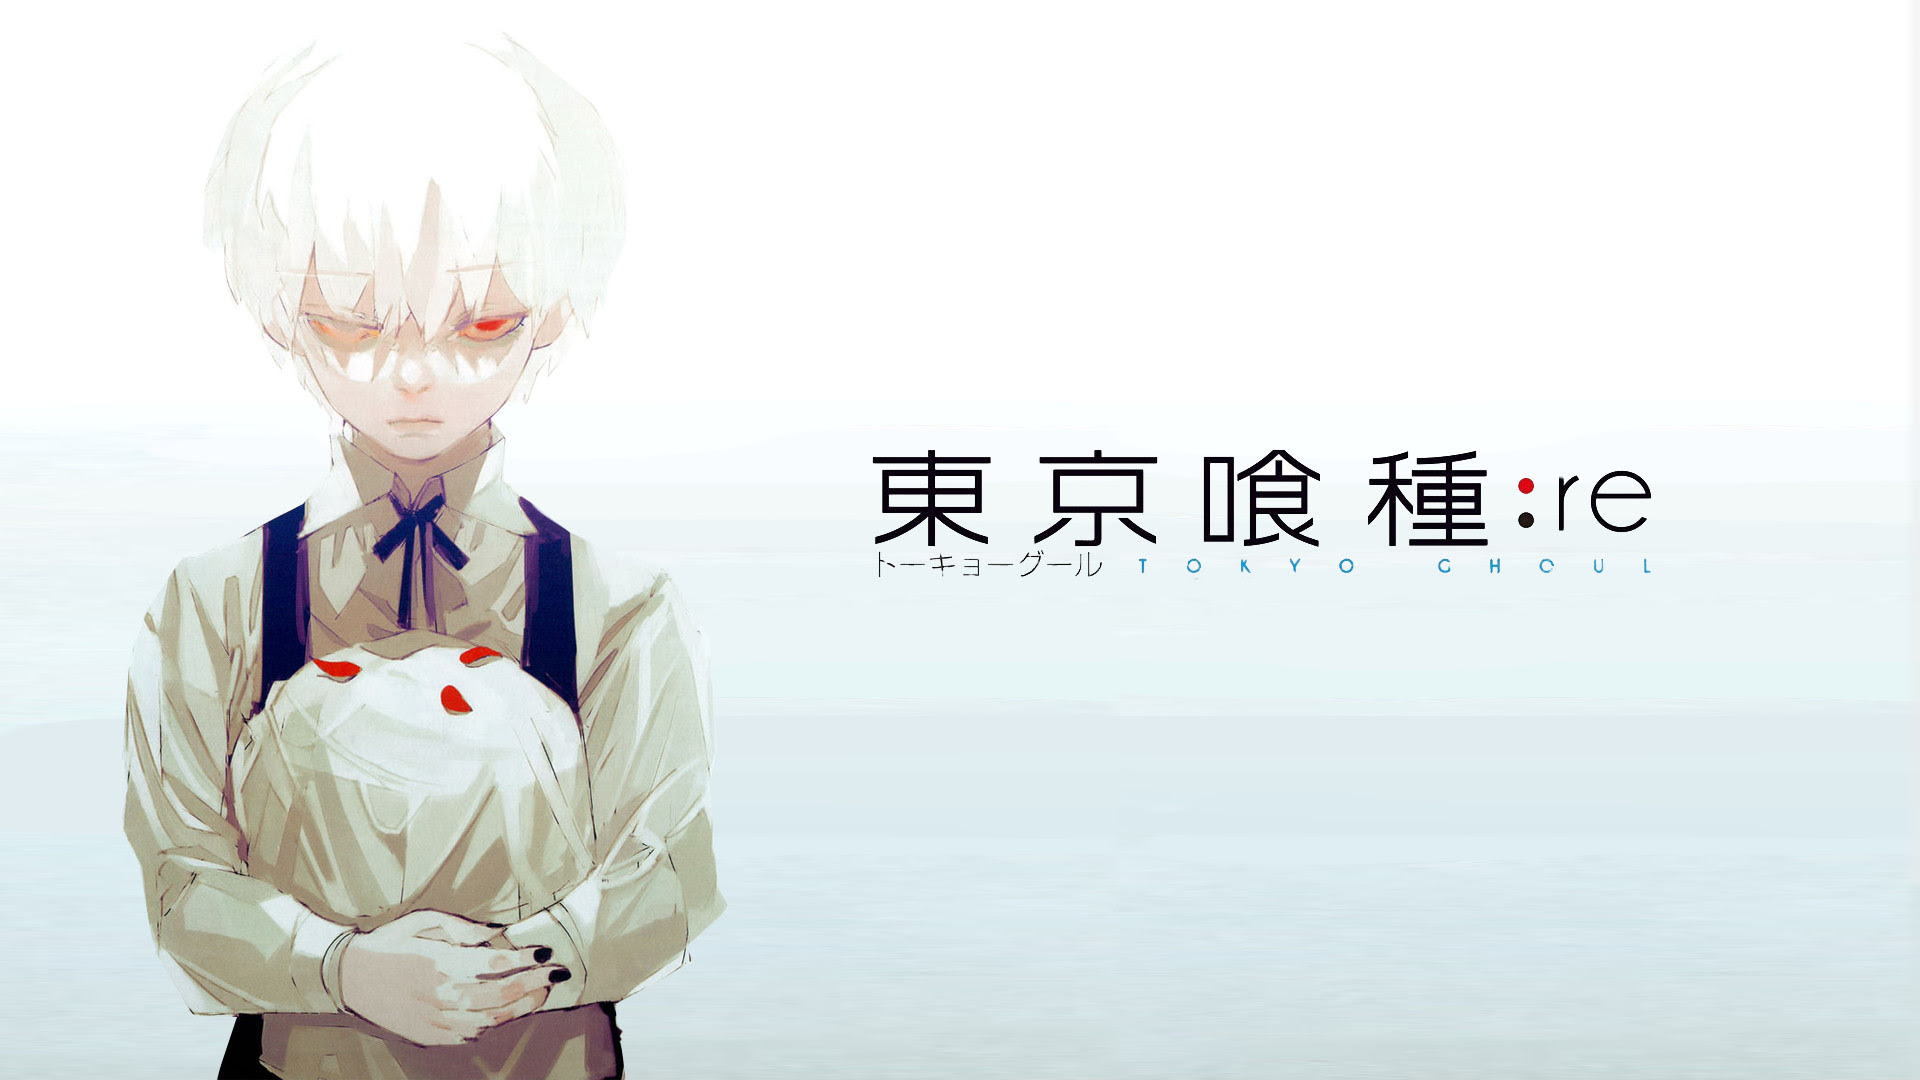 Tokyo Ghoul Re Wallpaper 83 Images